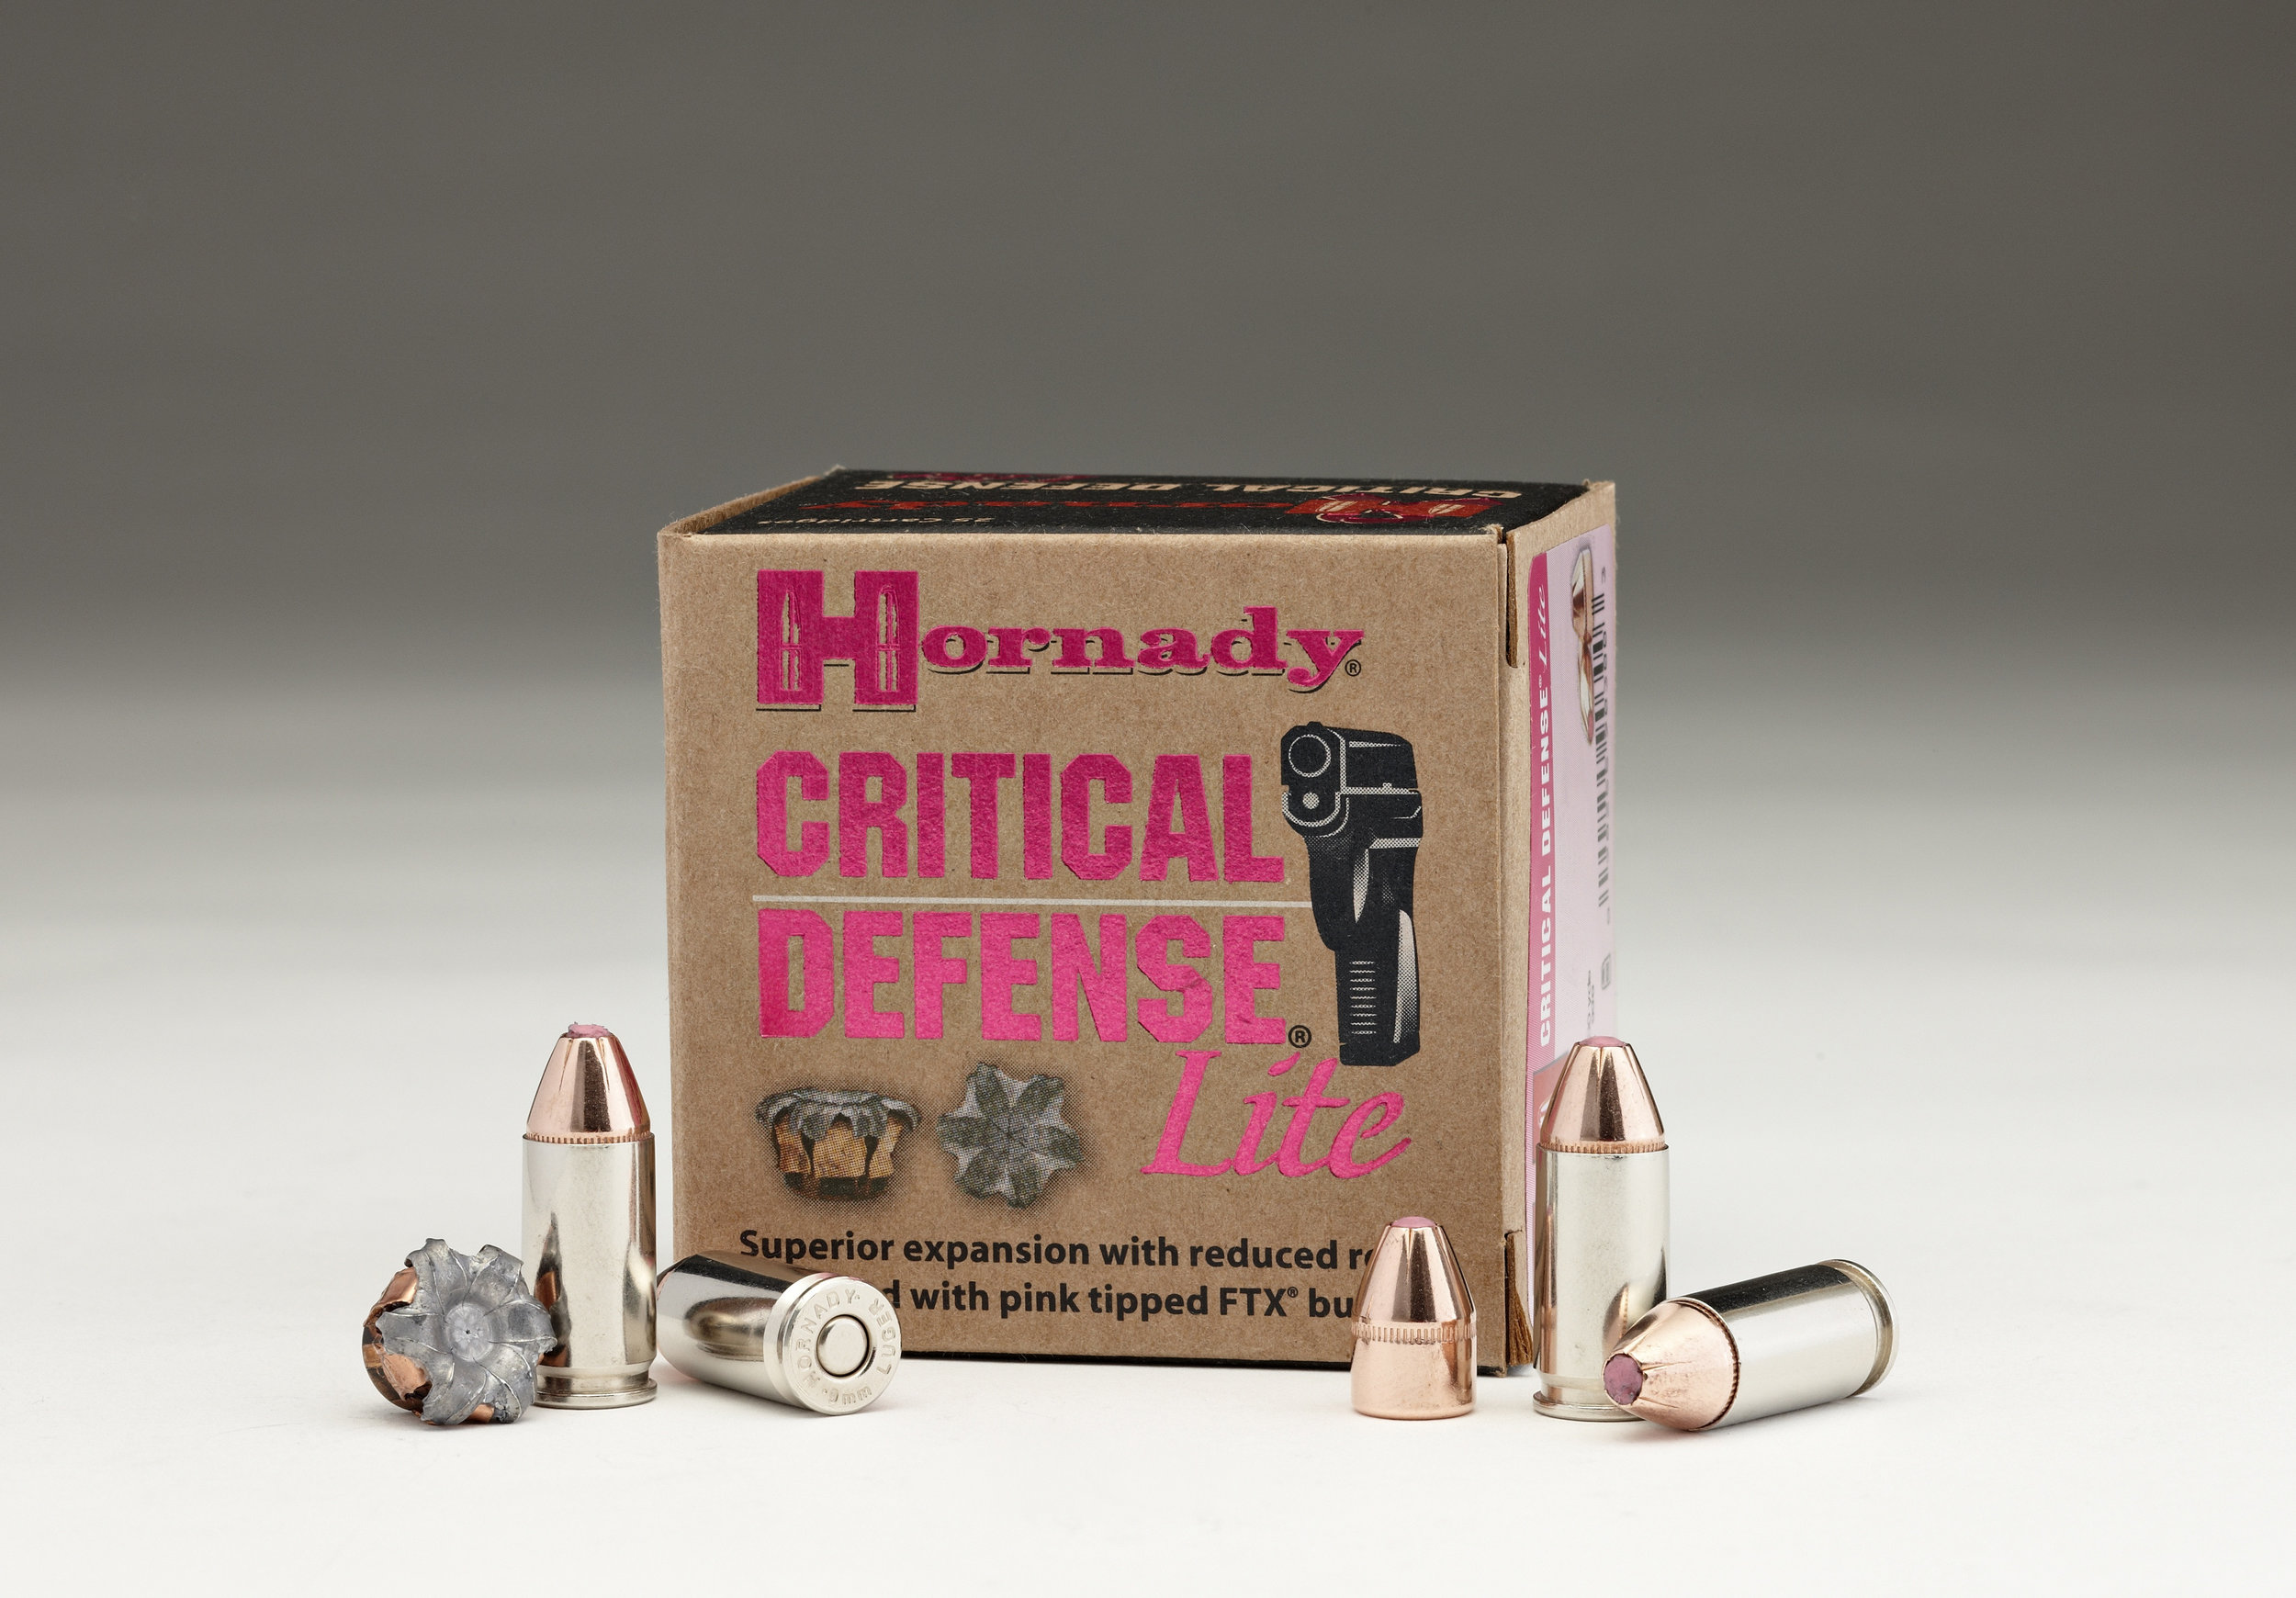 The GRACE Cancer Foundation is grateful to have the incredible support of Hornady as our Corporate Sponsor! Funds raised through the sales of Hornady's Critical Defense bullet are given to Grace each year, at $.50 from every box sold.Thank you, Hornady! -